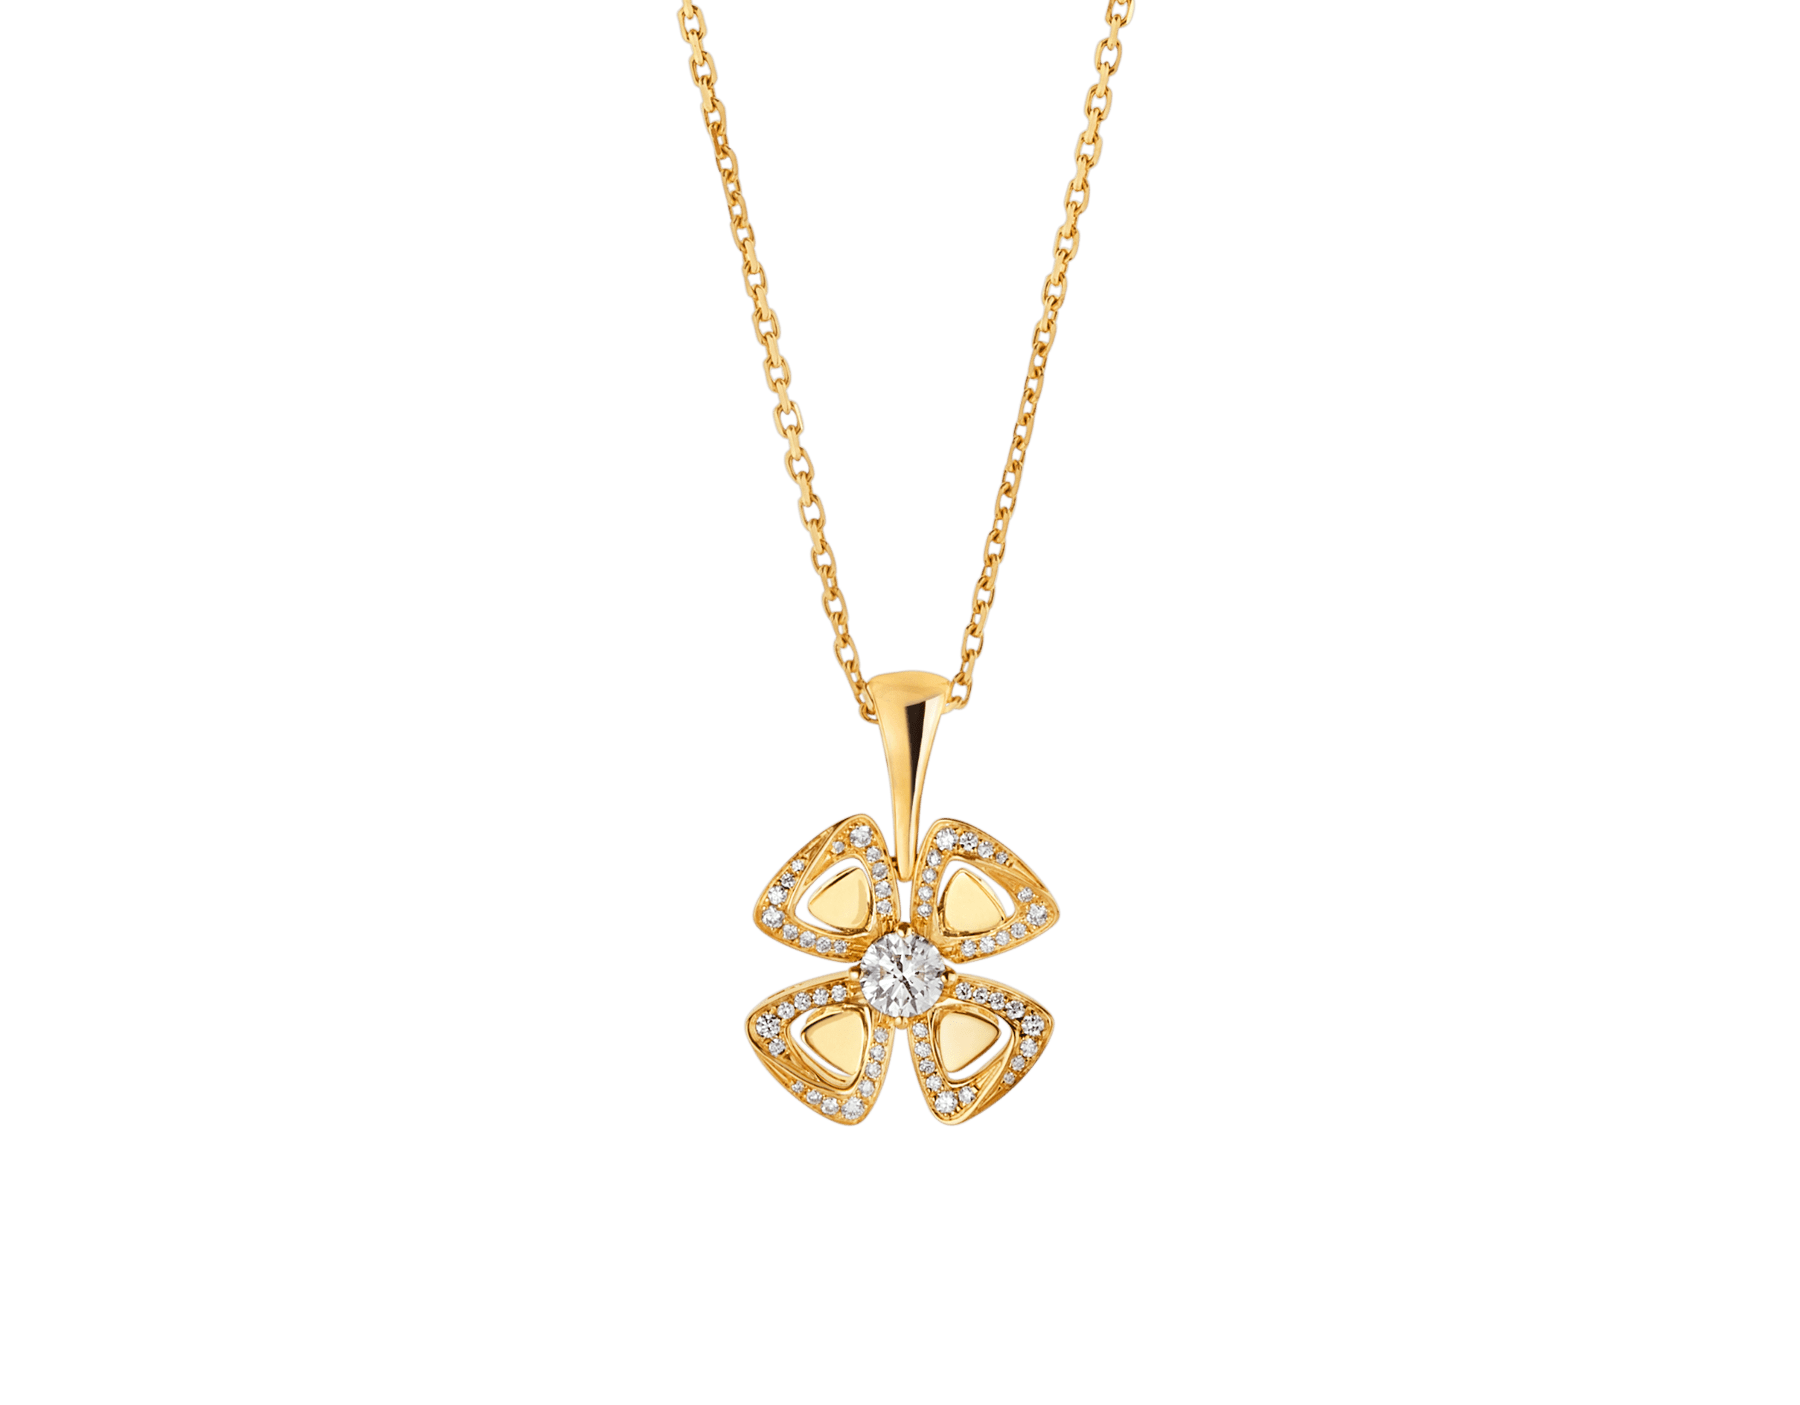 Fiorever 18 kt yellow gold necklace set with a central diamond and pavé diamonds. 357504 image 1